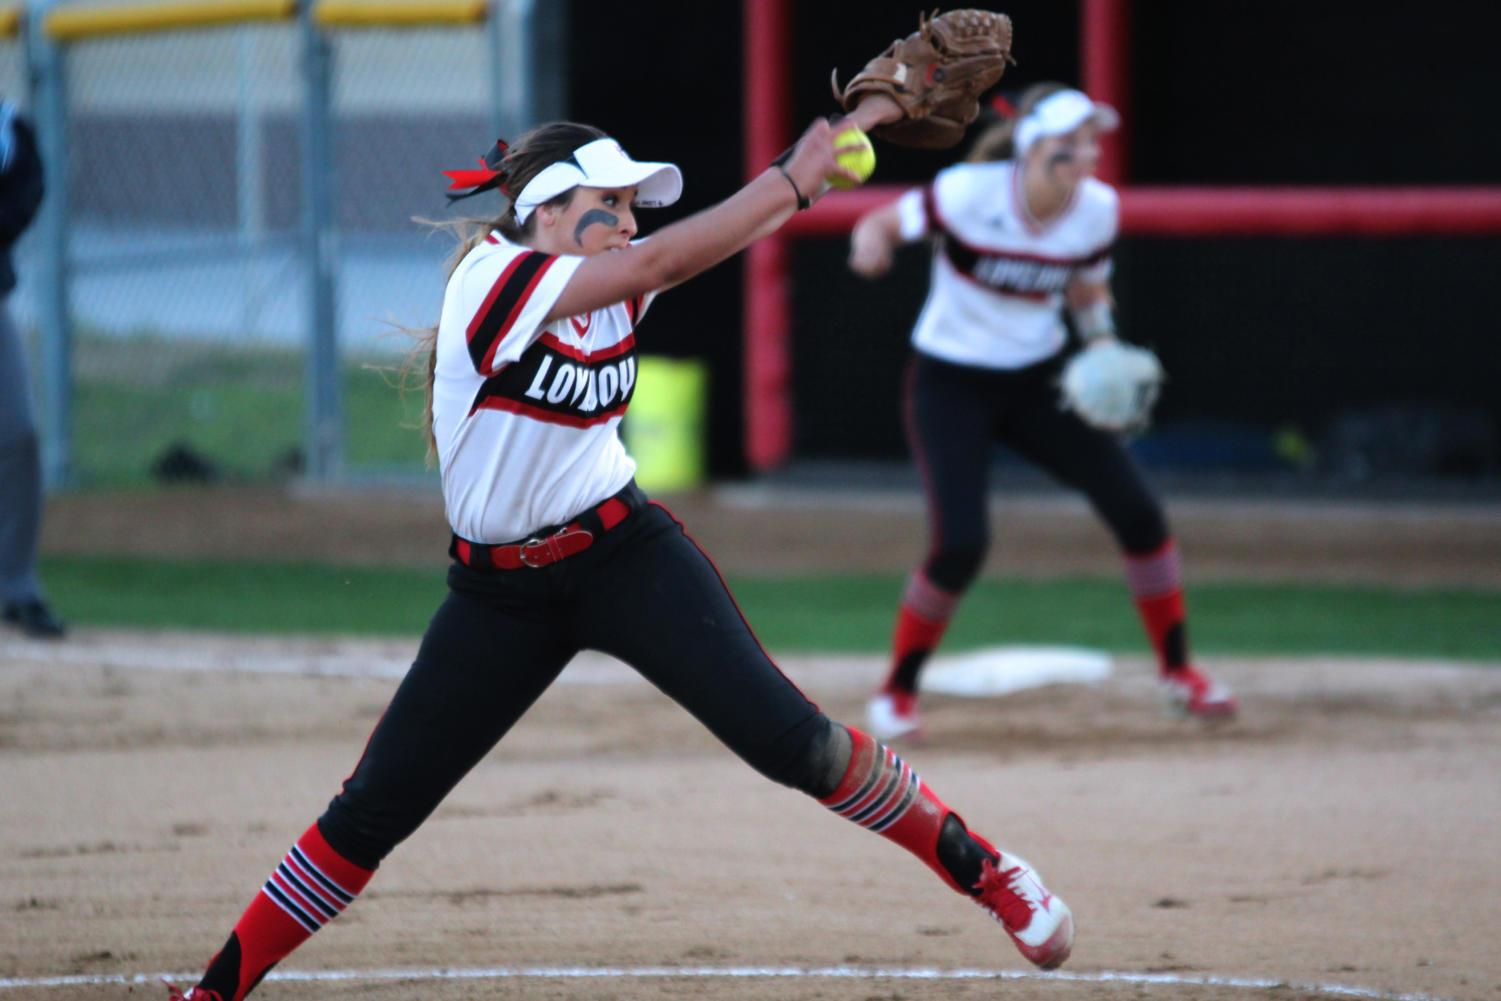 Sophomore Harleigh Bettis winds up to pitch in a game against West Mesquite.